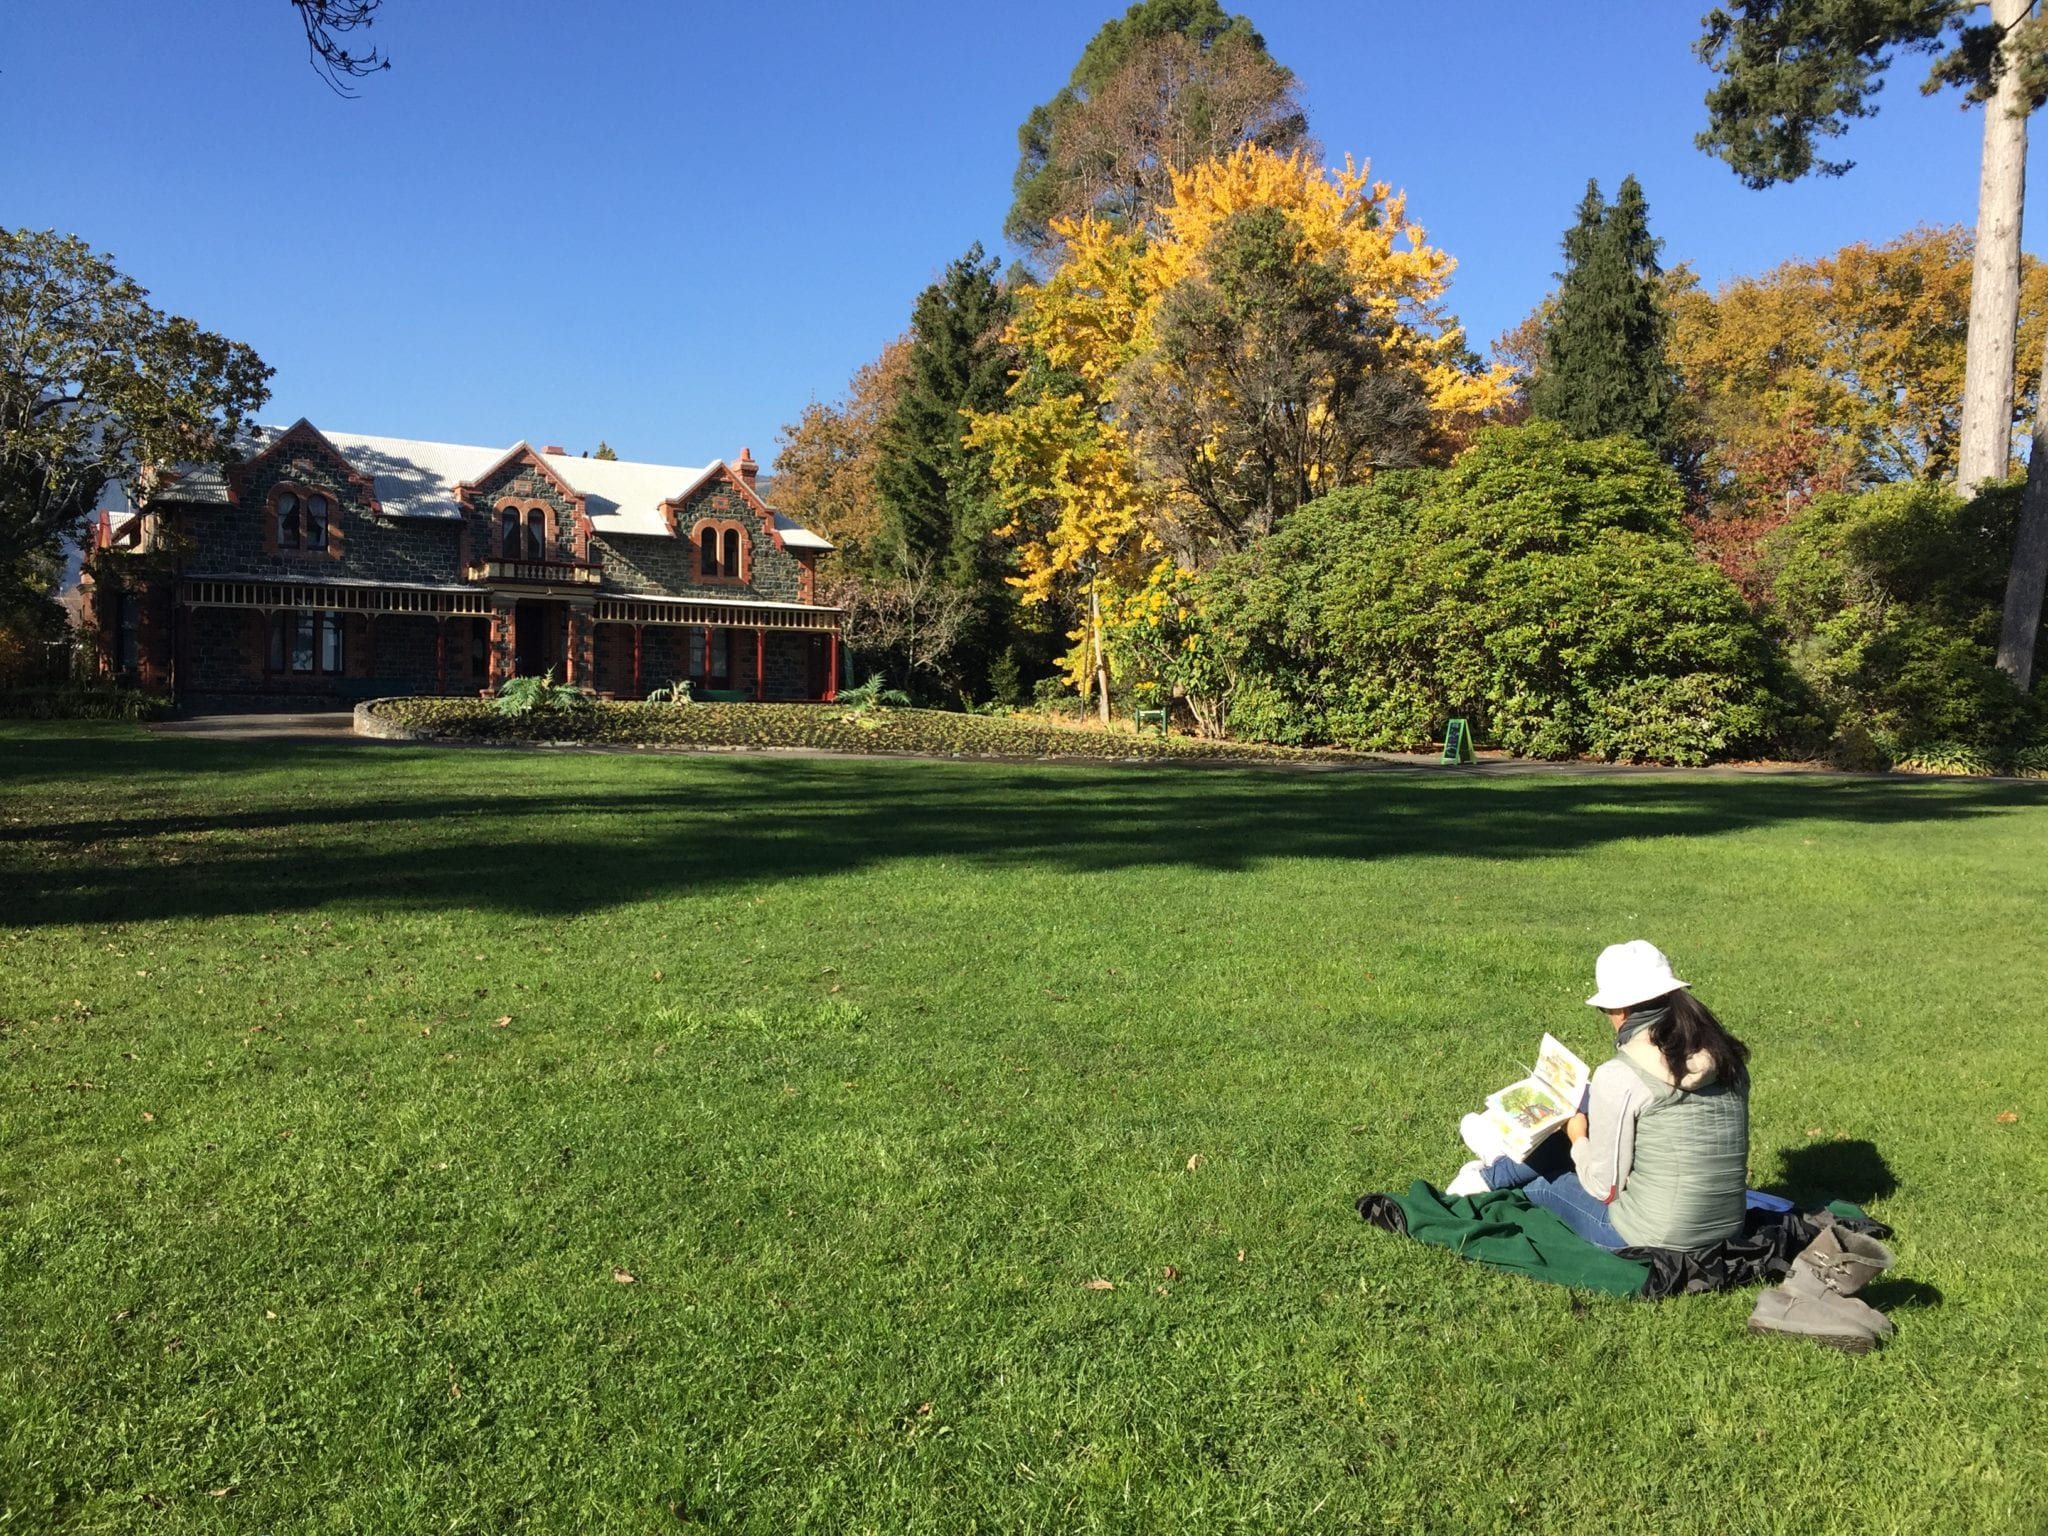 Photos Of Plein Air Painting At Isel Park